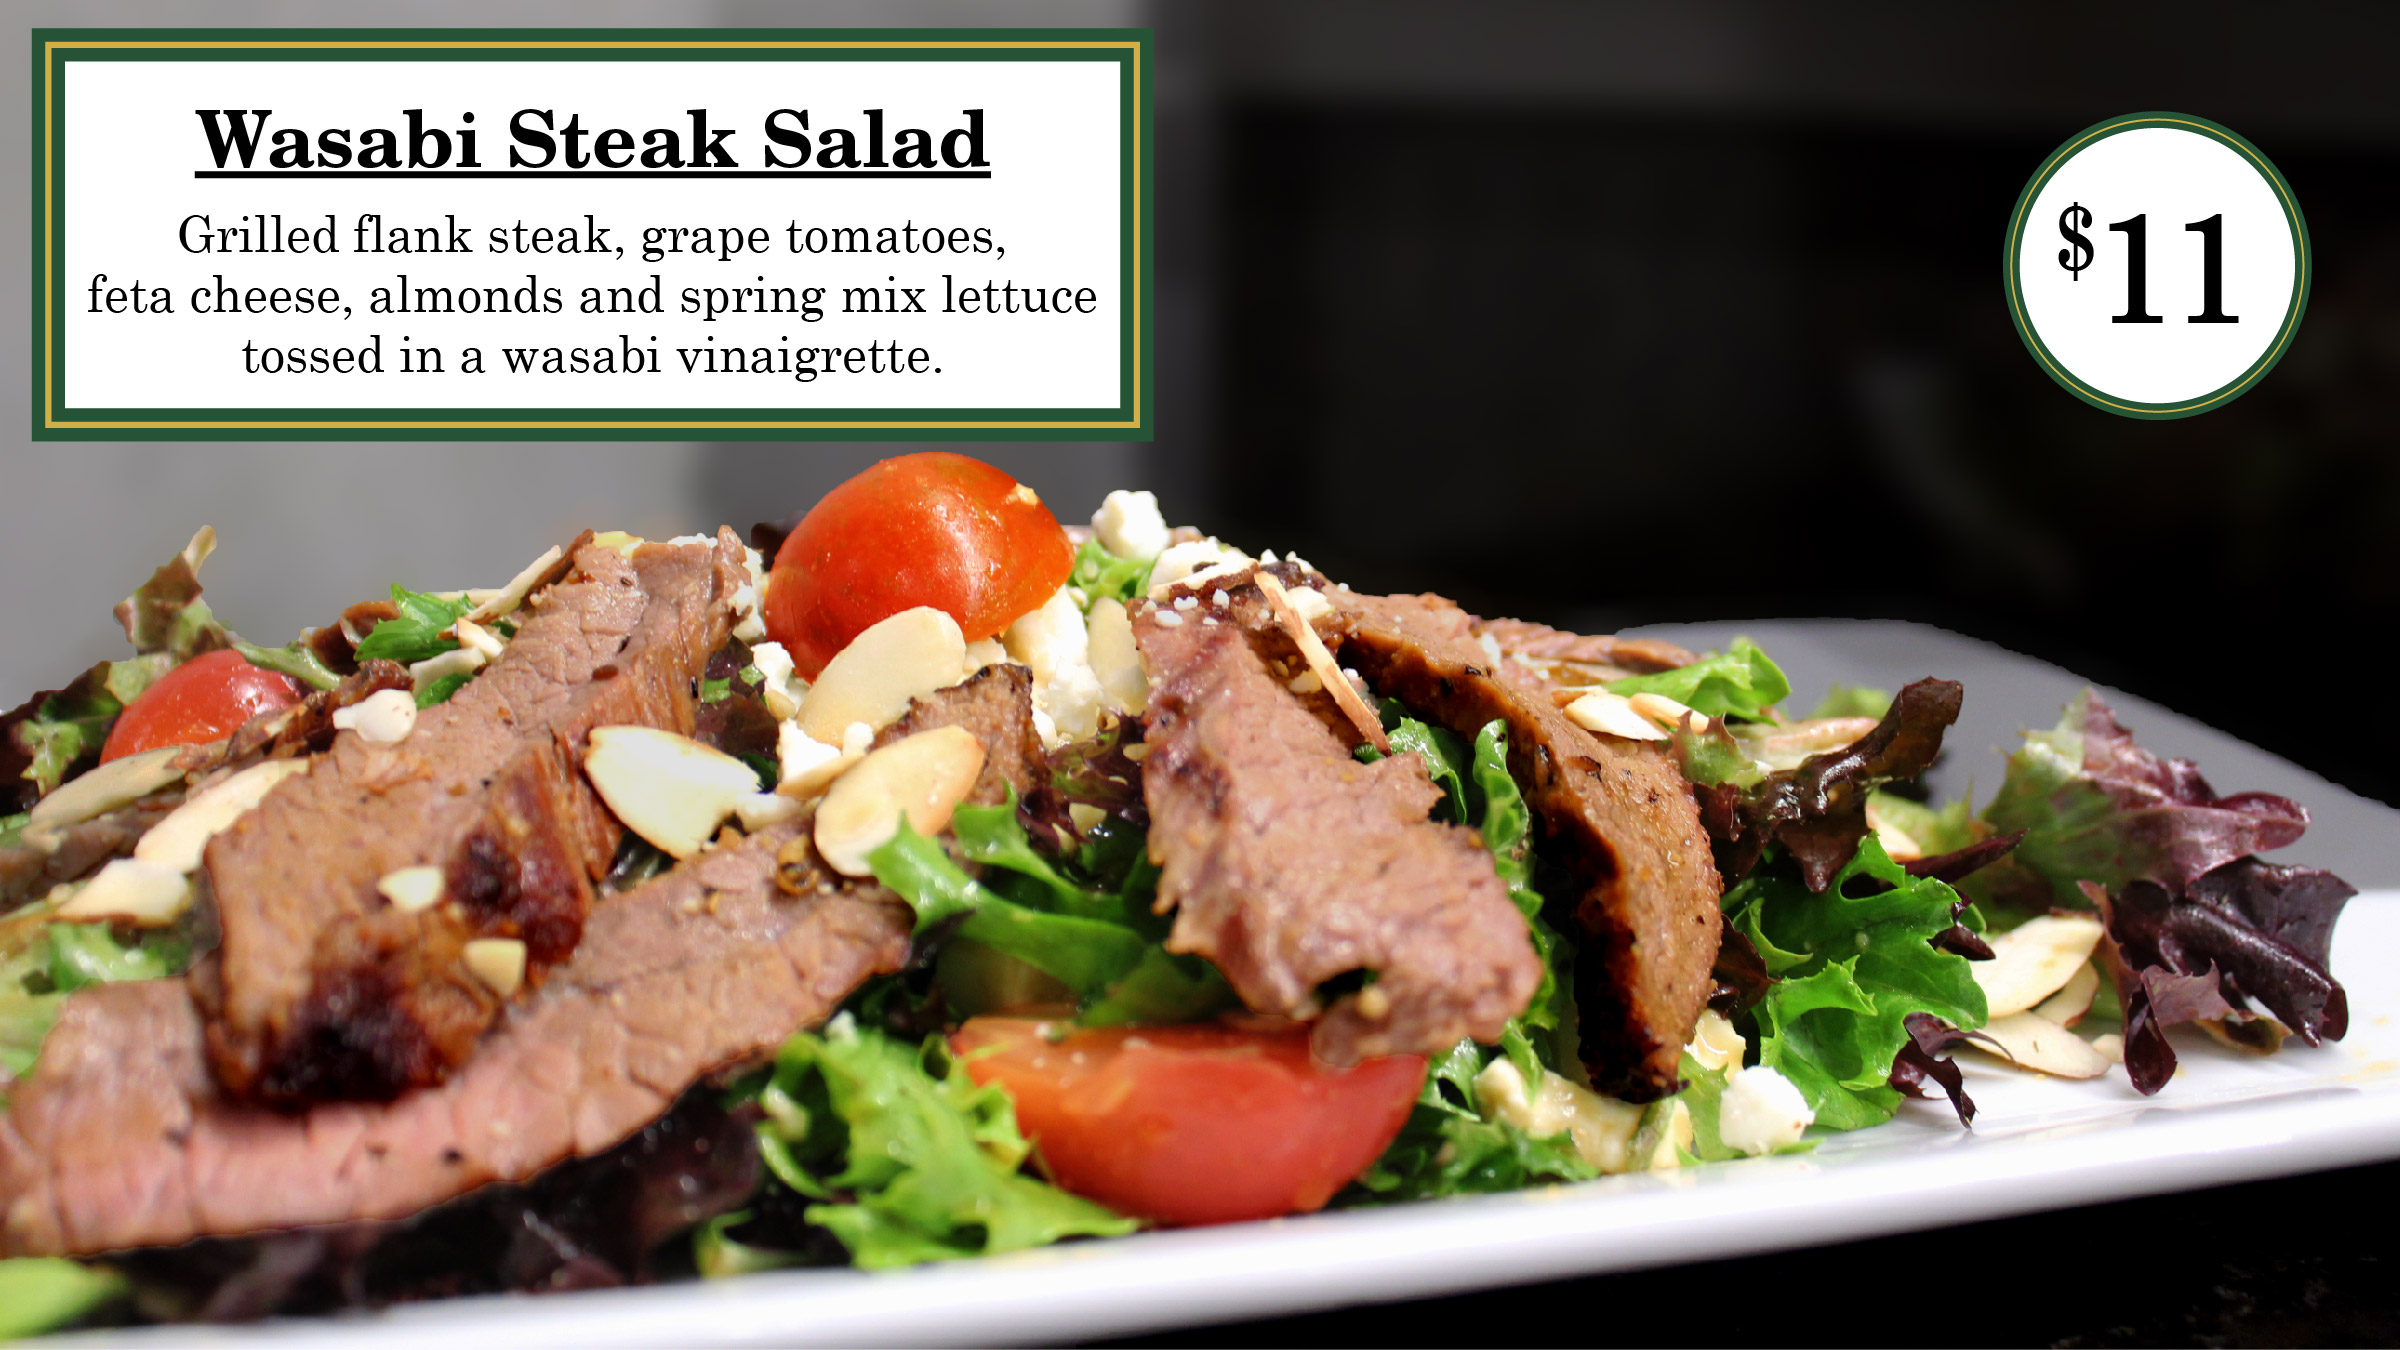 Wasabi Steak Salad.jpg